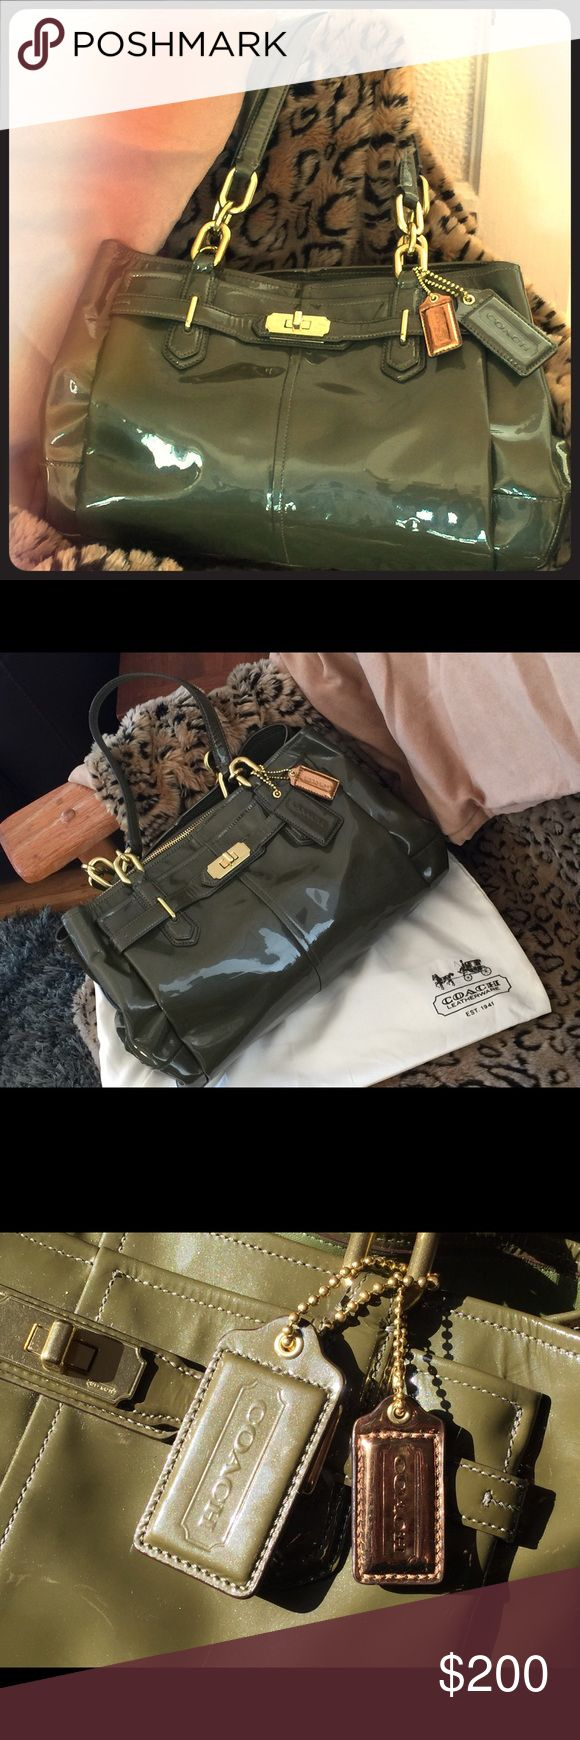 Coach Olive Green Handbag Olive green patent leather Coach handbag with gold hardware. Excellent condition. Zipper middle section with magnet closure side sections. Coach Bags Satchels